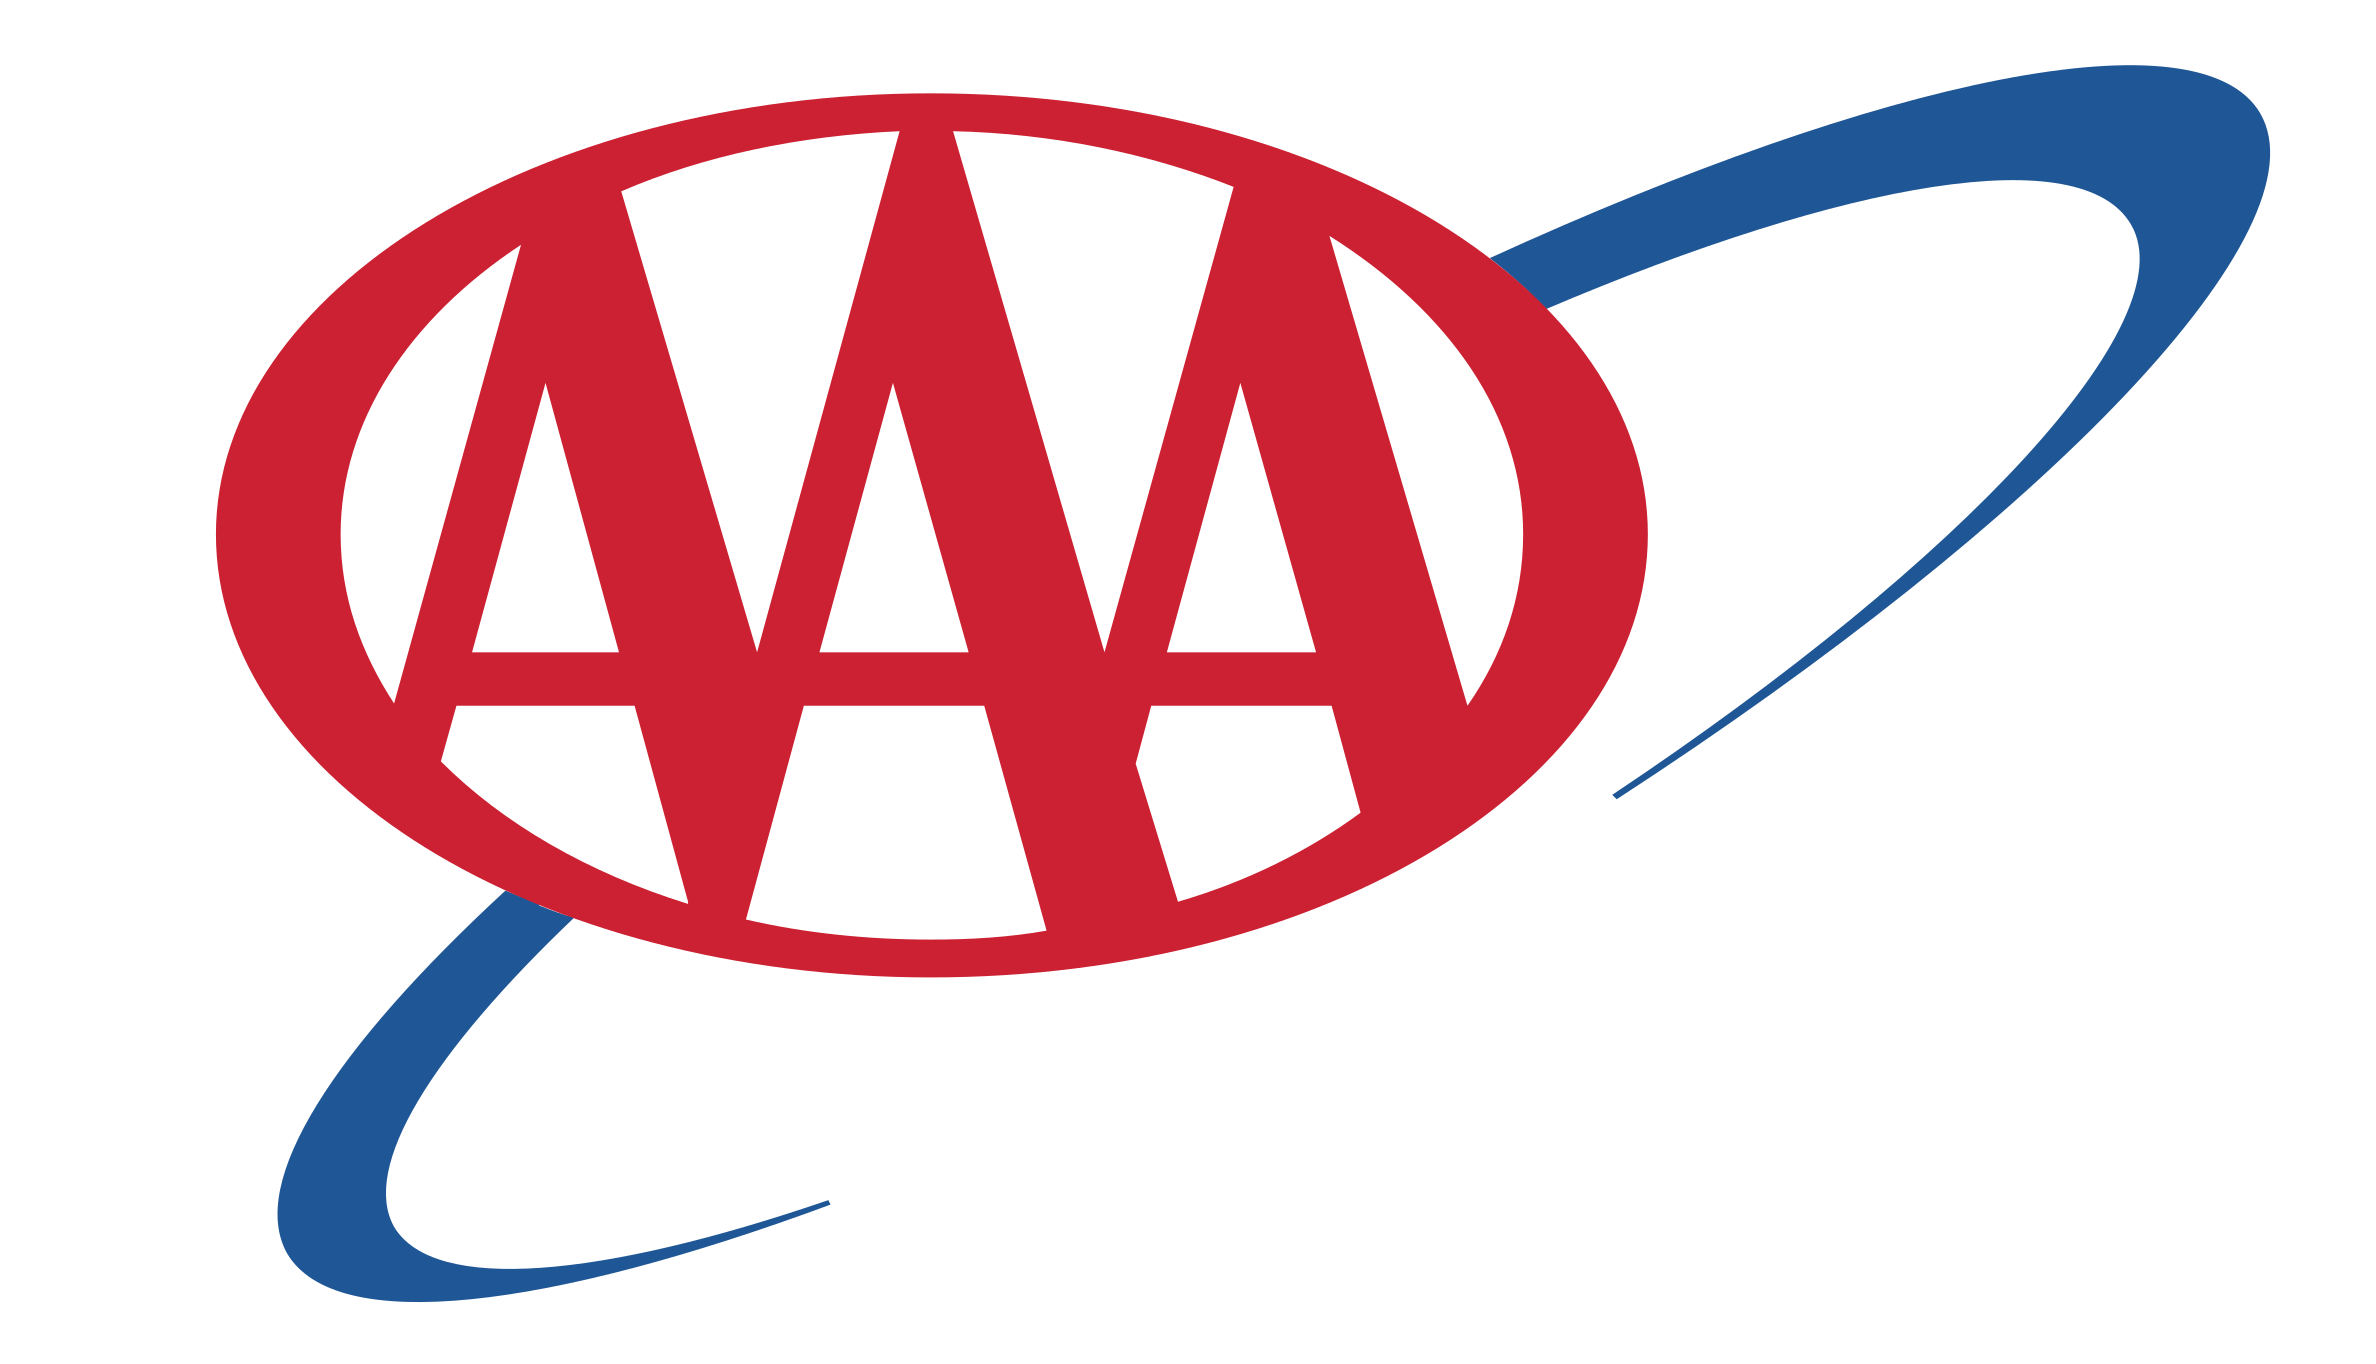 aaa-logo-png-transparent